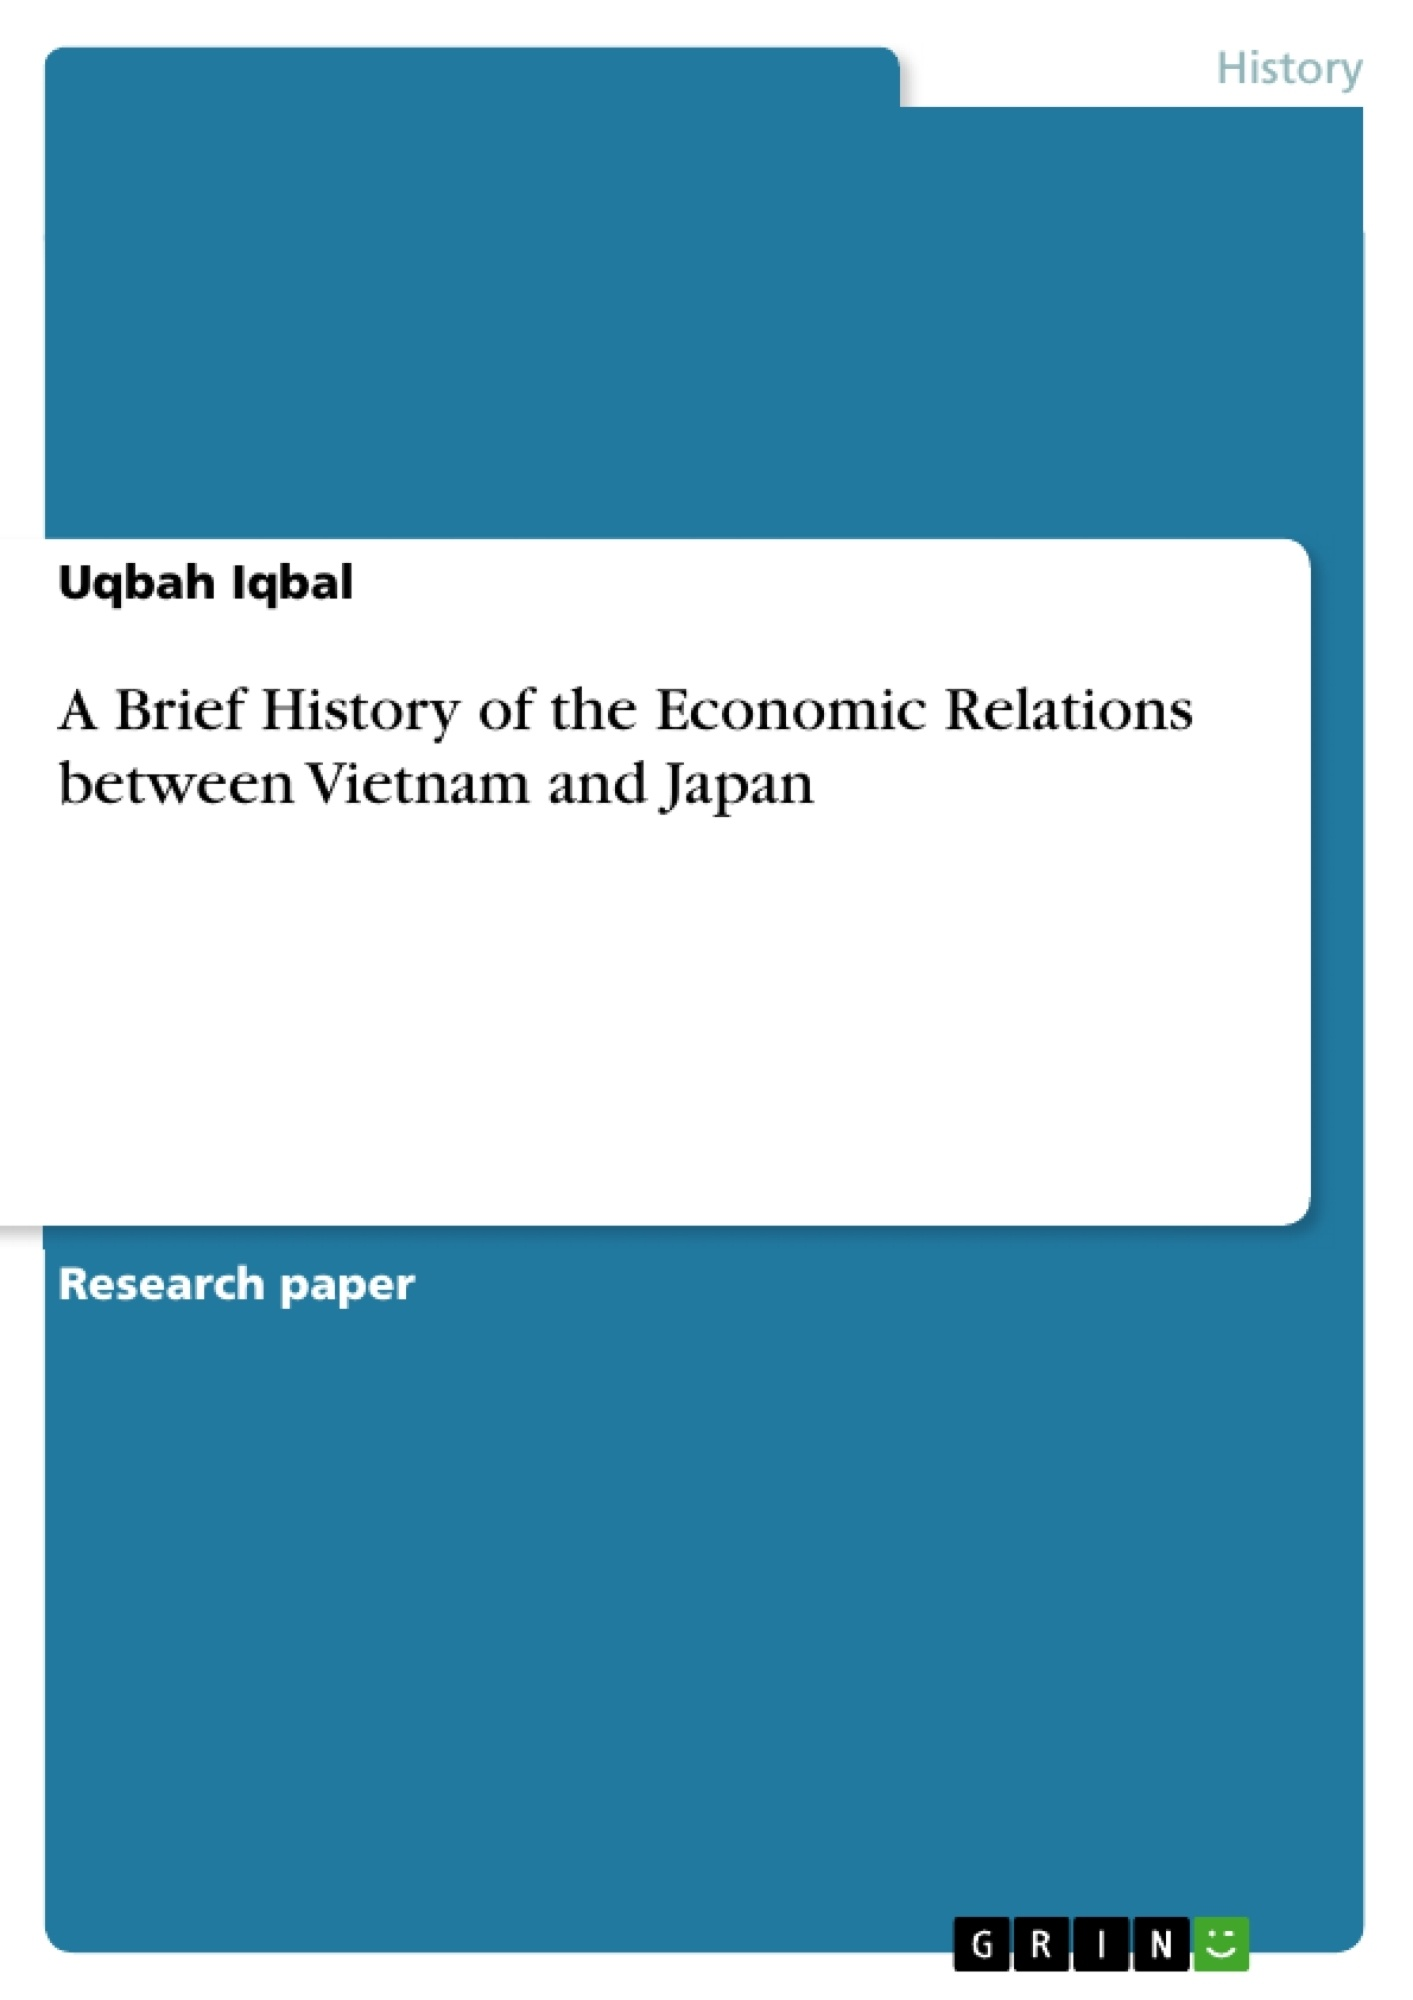 Title: A Brief History of the Economic Relations between Vietnam and Japan